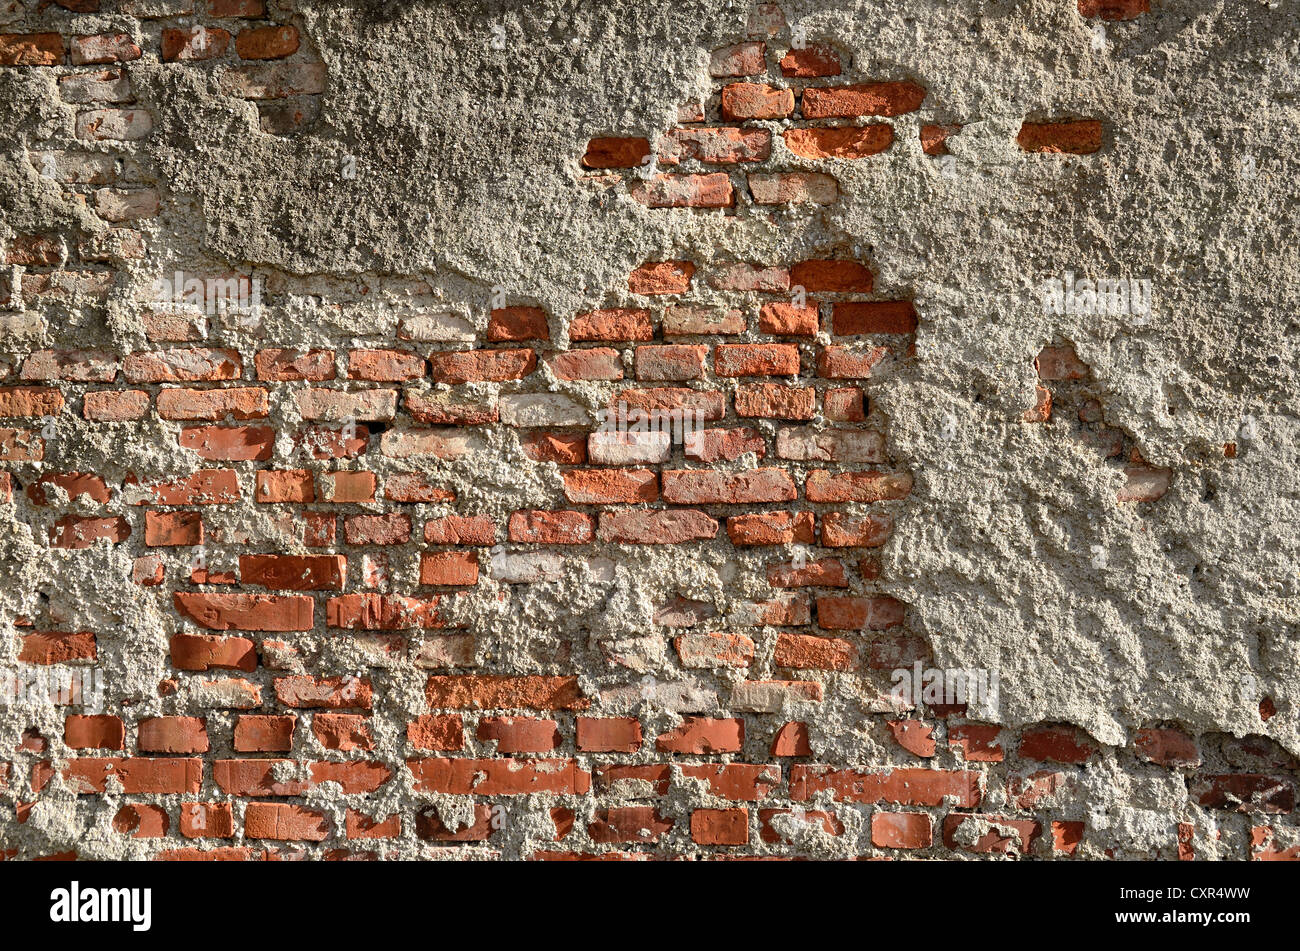 Brickwork of so-called Reichsformat or German format bricks with plaster peeling, Miesbach, Upper Bavaria, Bavaria - Stock Image